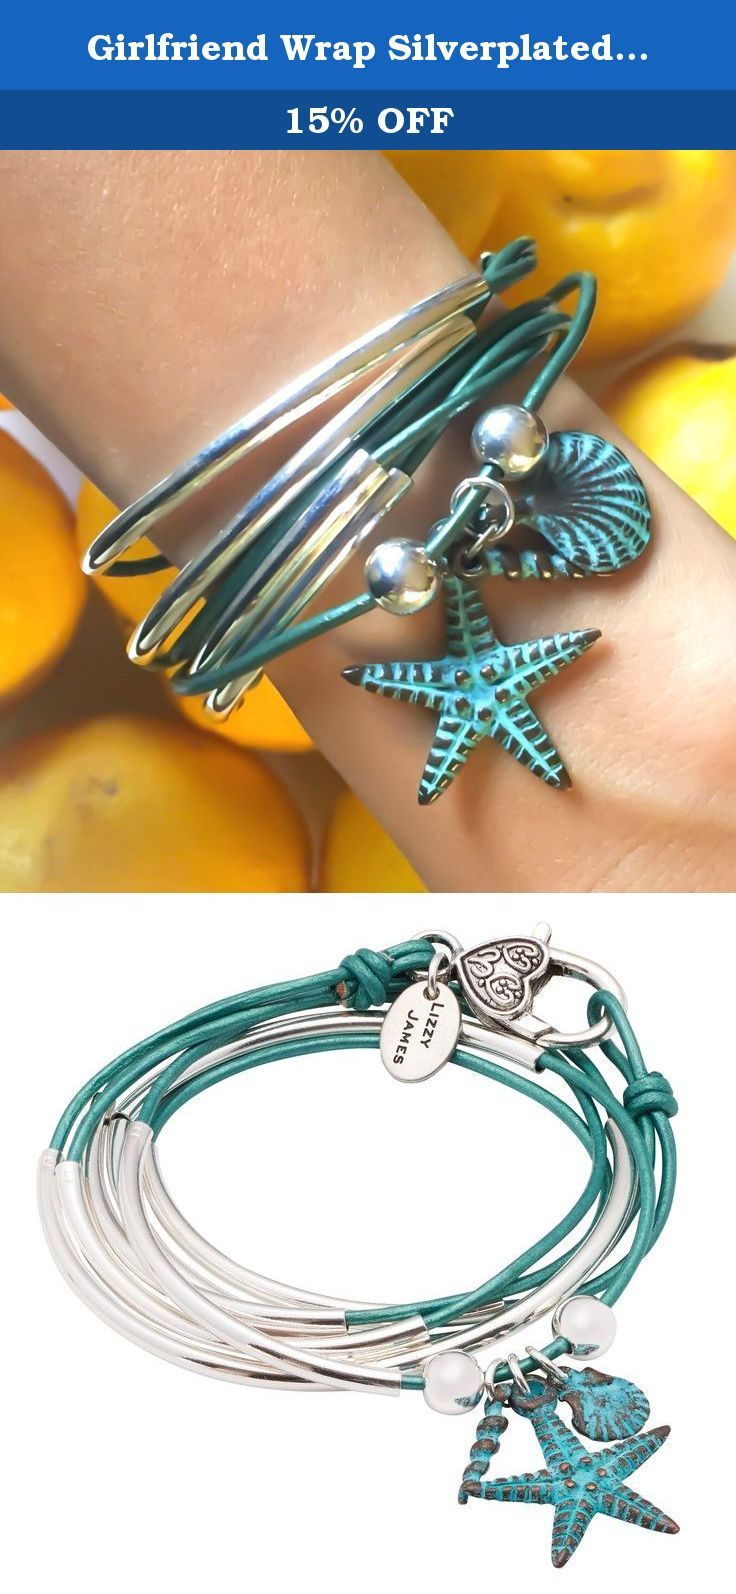 Girlfriend Wrap Silverplated 2 Strand Metallic Teal Leather Wrap Bracelet with Nautical Charm Trio (Petite). The Girlfriend Wrap in silverplate with Nautical charm trio is a 2 strand leather wrap bracelet & necklace. This wrap bracelet is handcrafted in the USA. Please click on our seller profile page to see proper sizing instructions. Sizing Information Measure your wrist with a string without slack to determine your size wrist. This measurement allows us to create a bracelet that will…